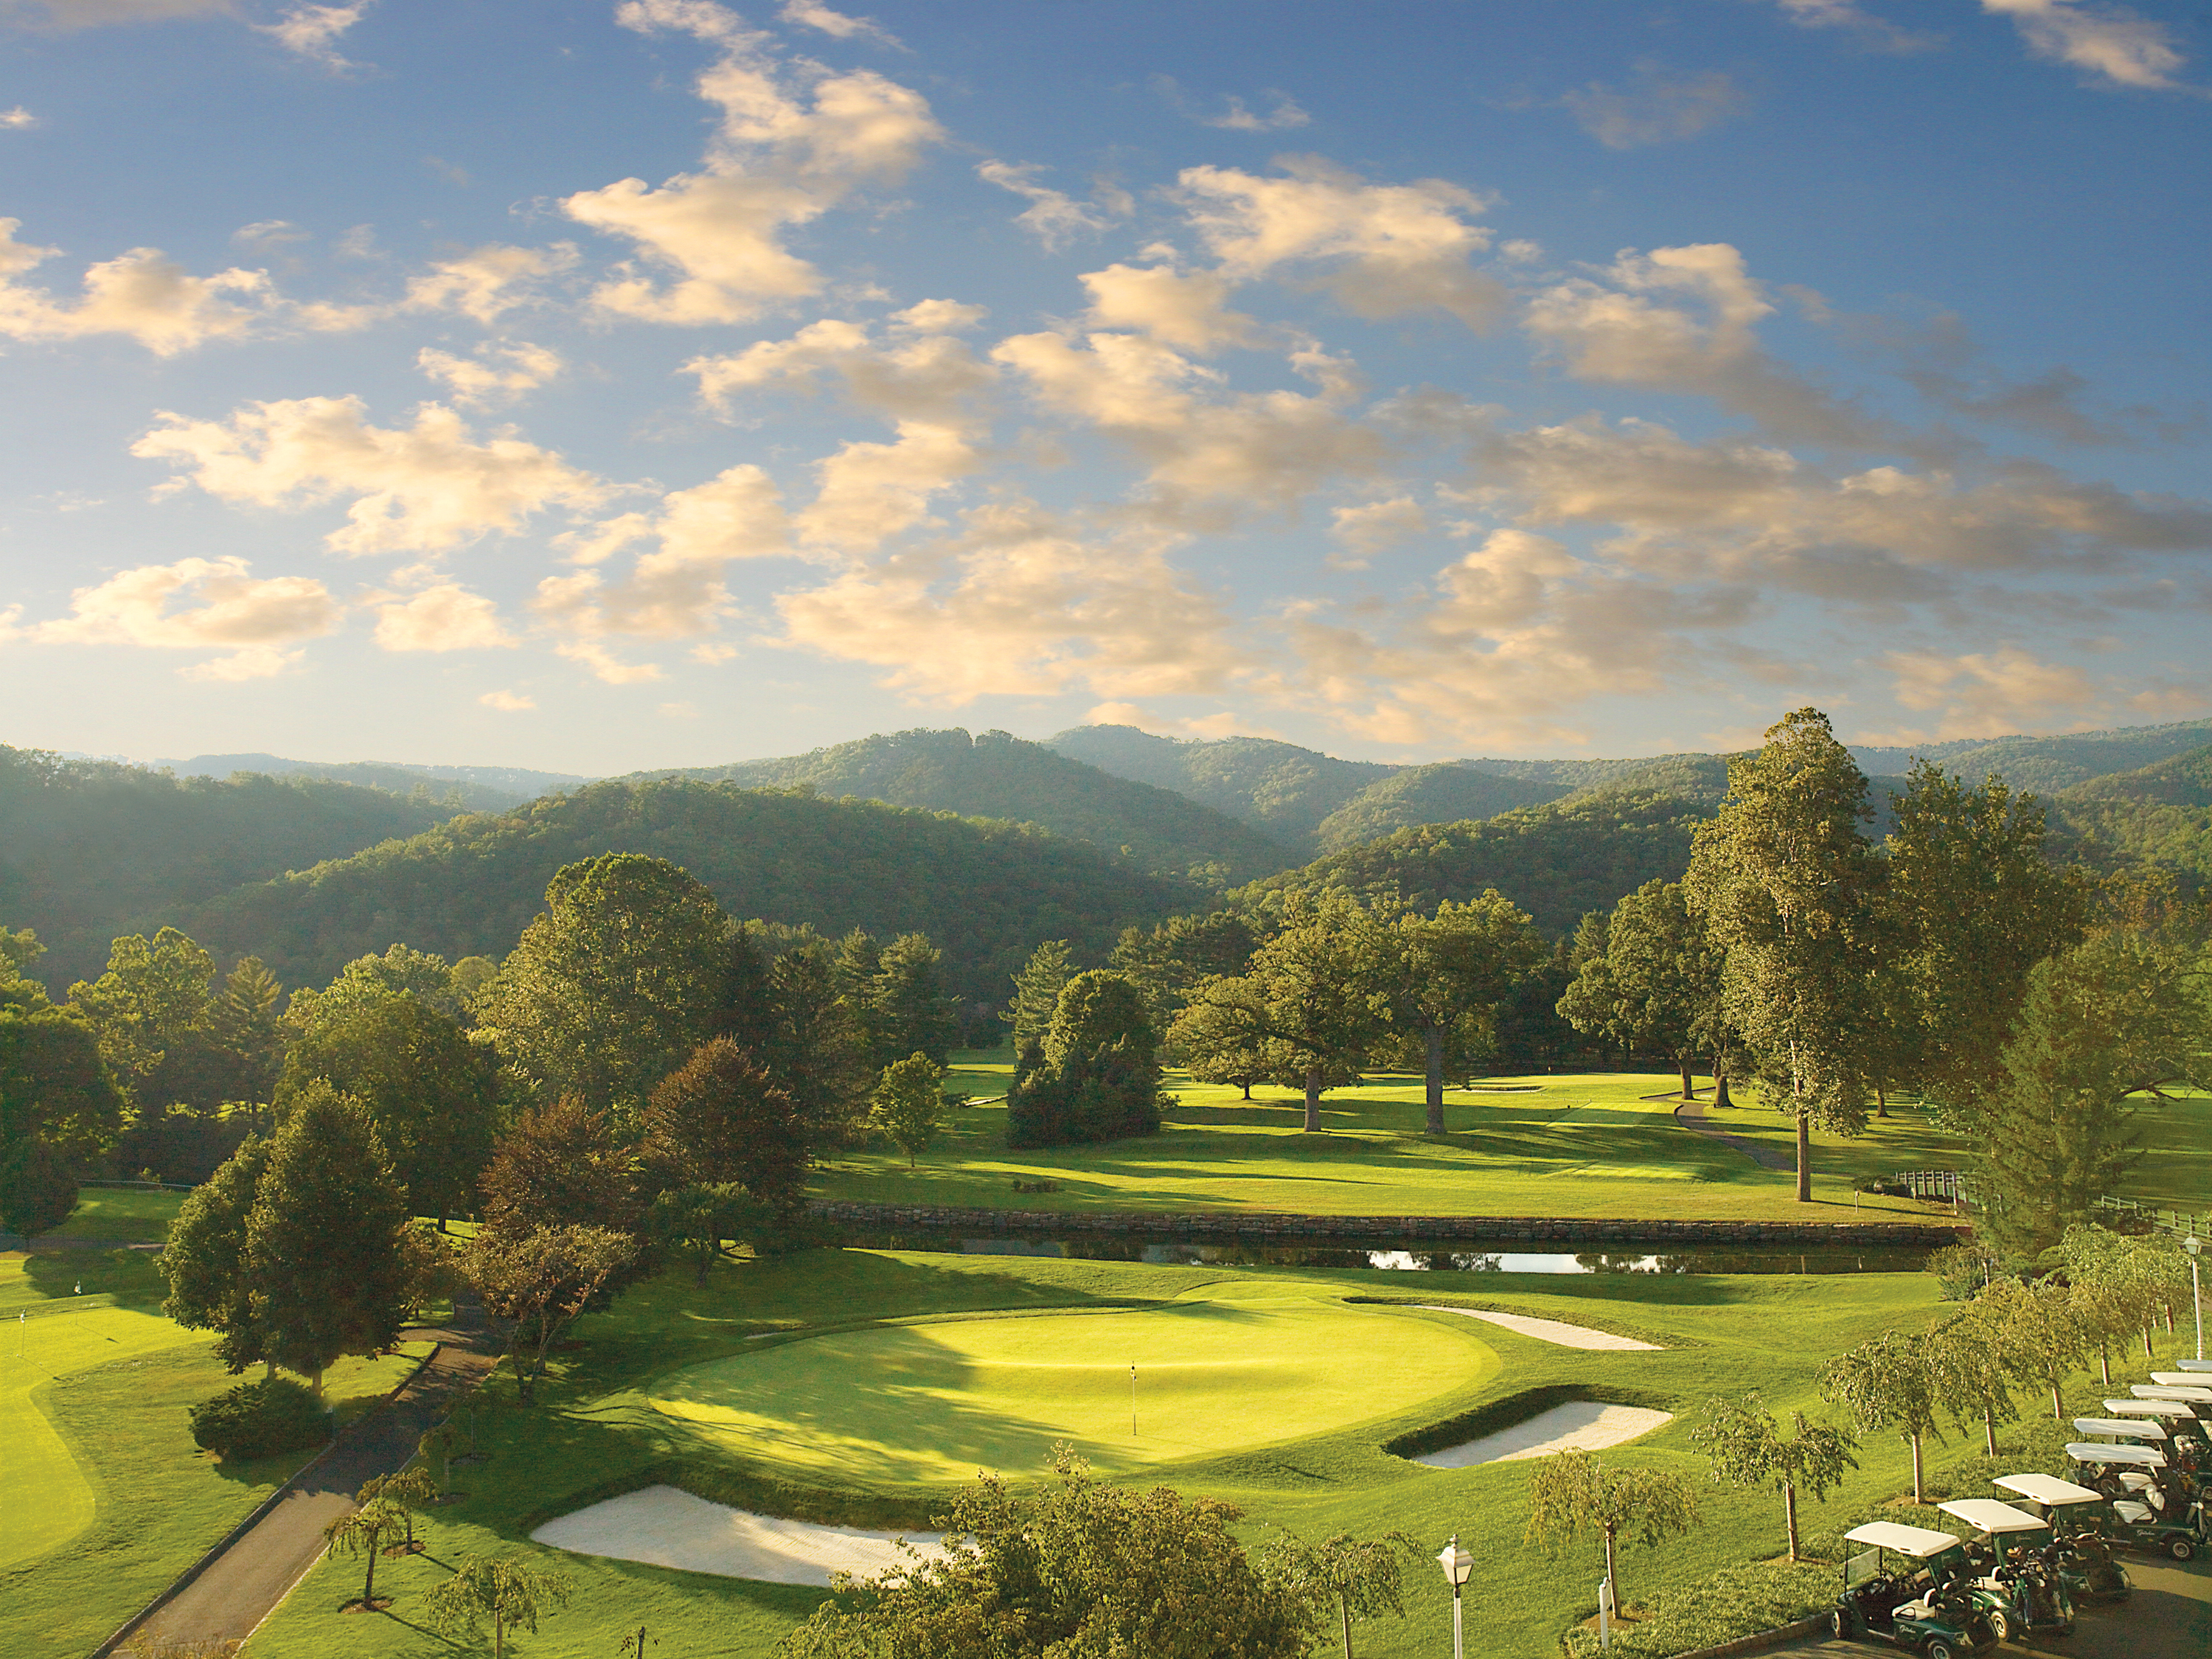 No. 18 at The Old White TPC (The Greenbrier)